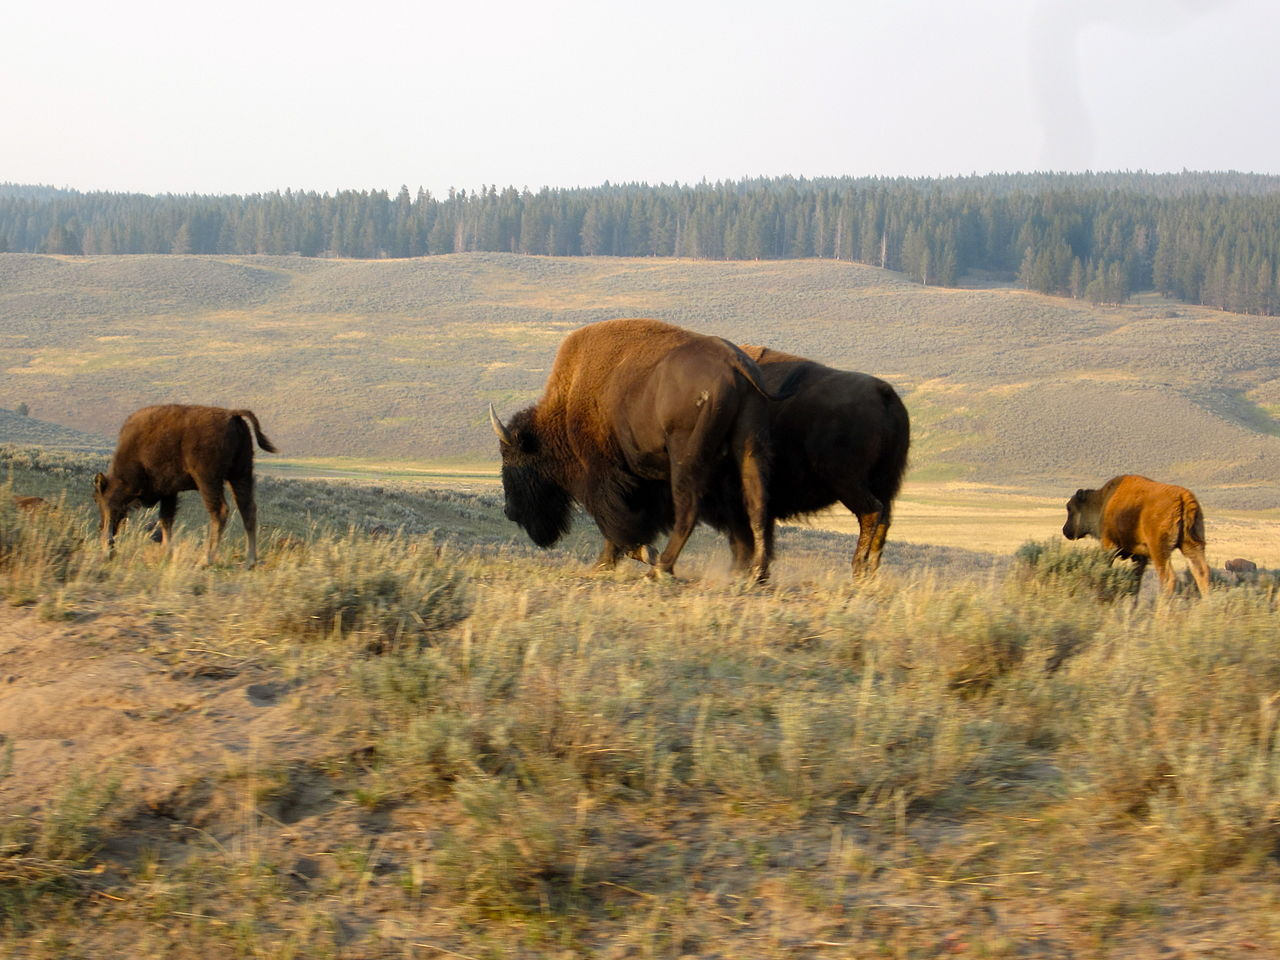 Tiffany Midge: Donald Trump plans something 'bigly' with bison